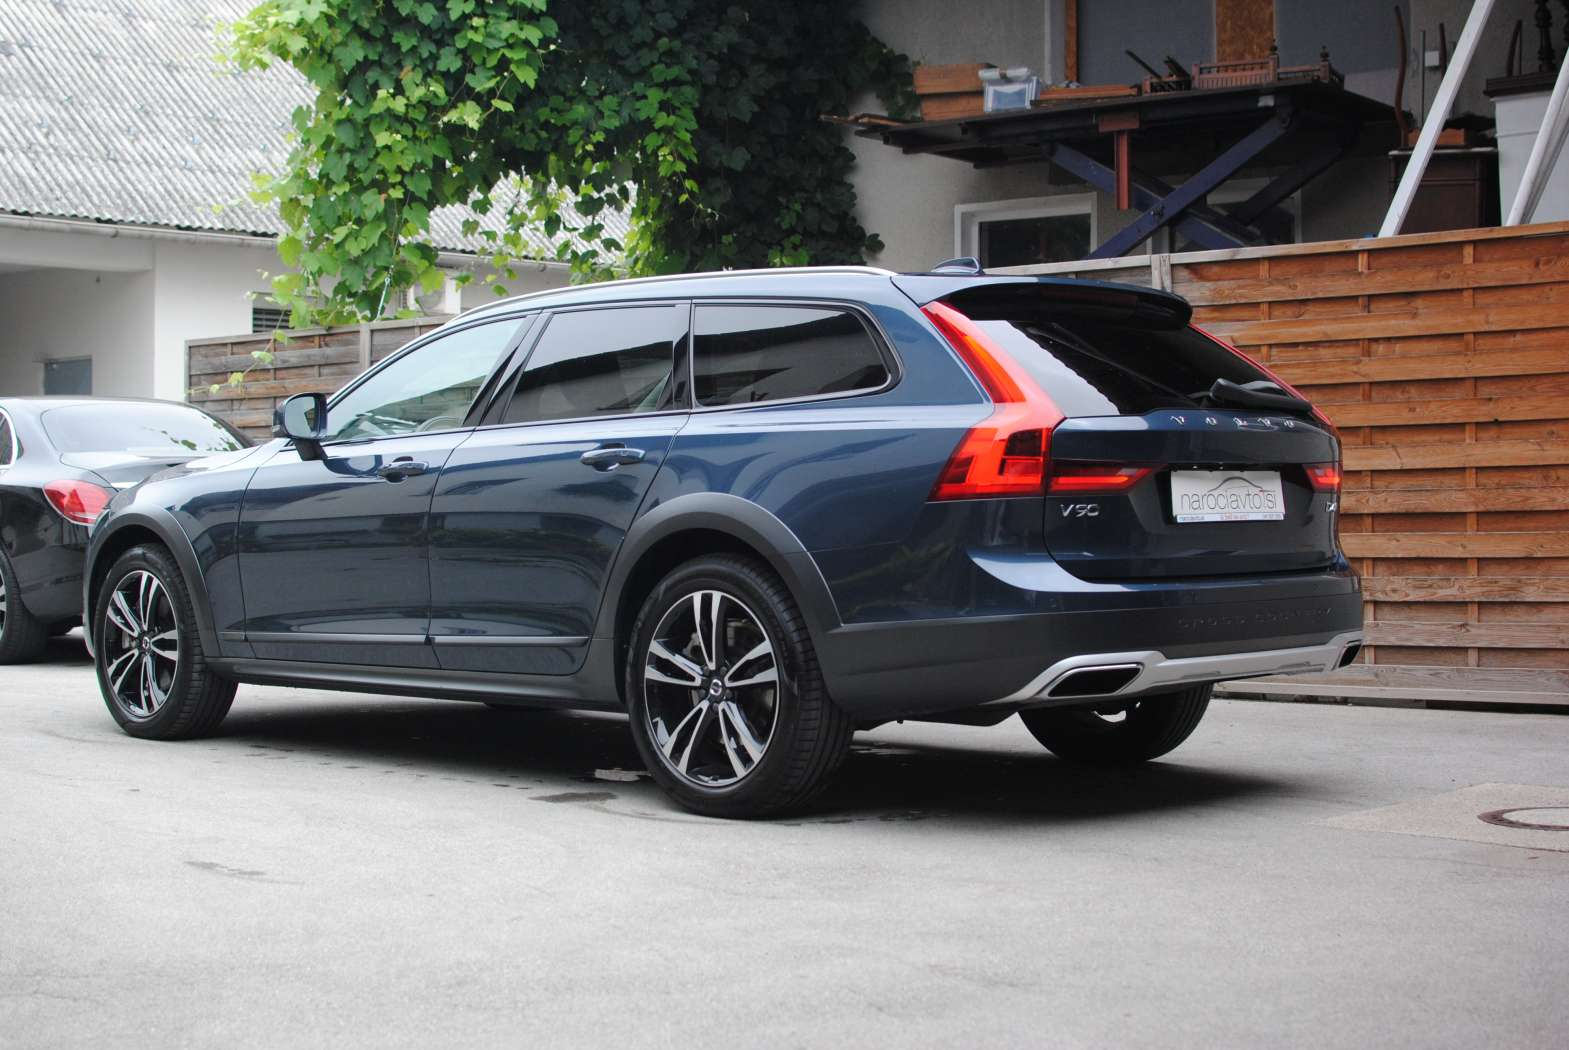 Volvo V90 Cross Country 2018 zunanjost 7